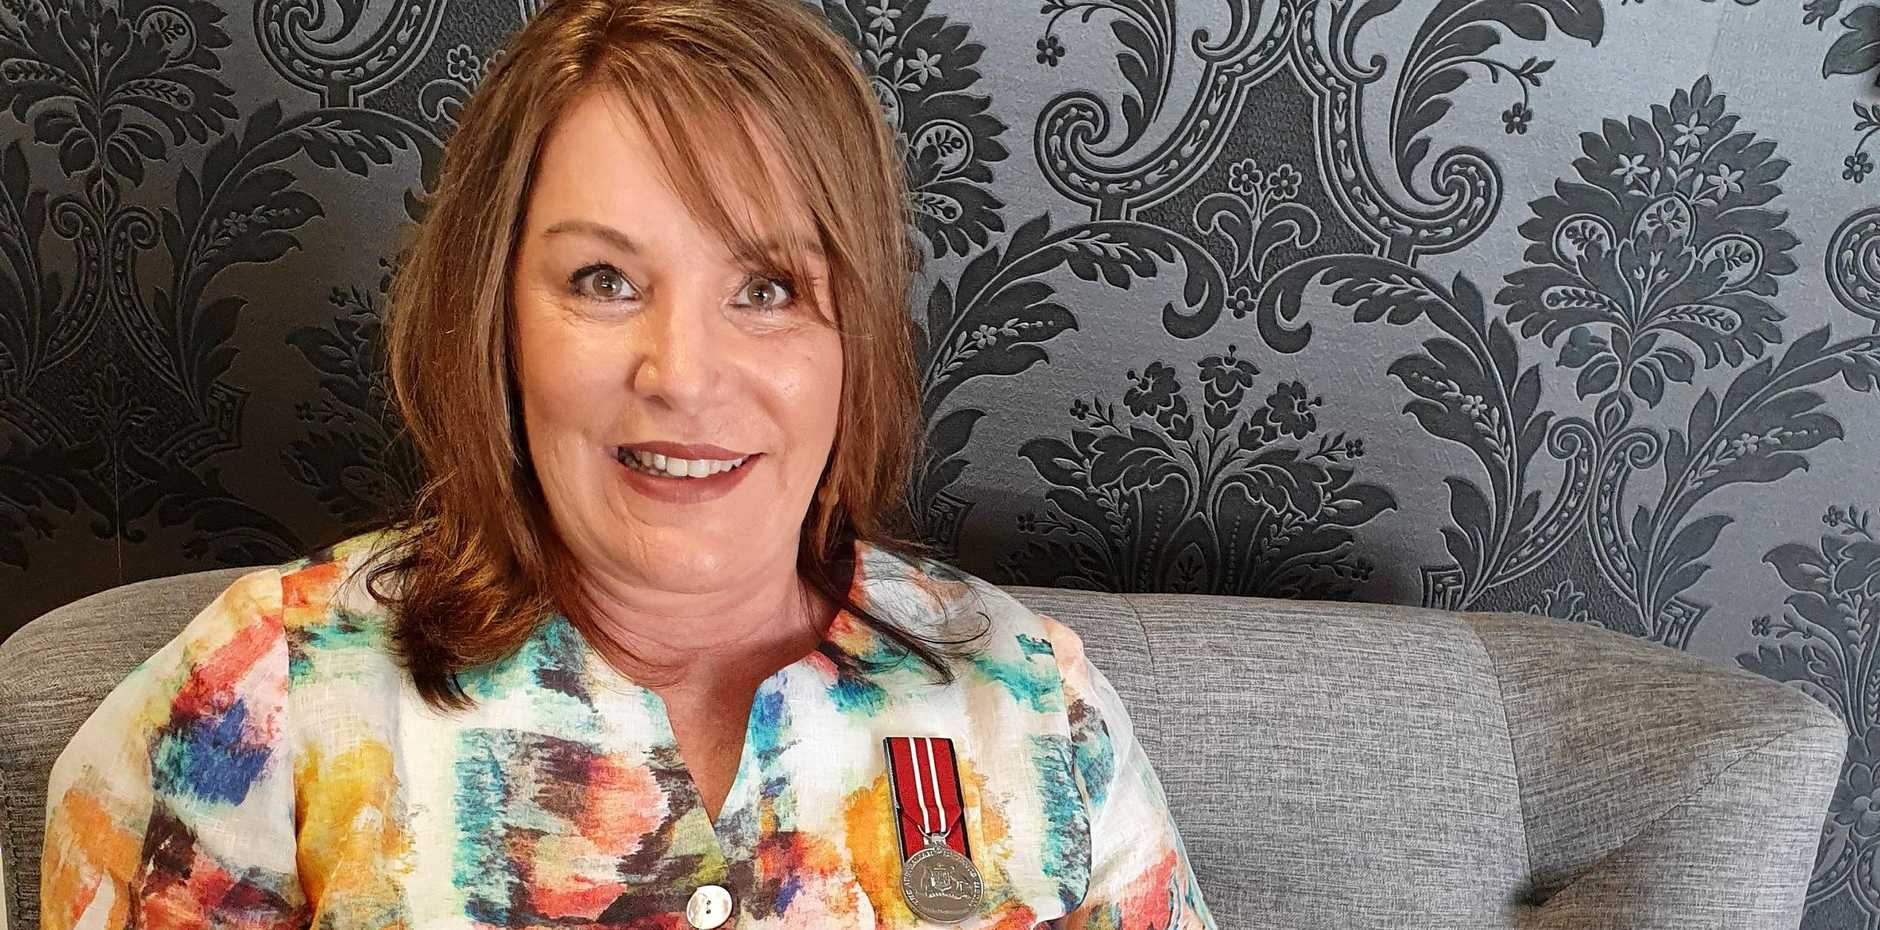 Bundaberg RSL sub-branch president Helen Blackburn will be the first female veteran to officiate the Dawn Service in 99 years.